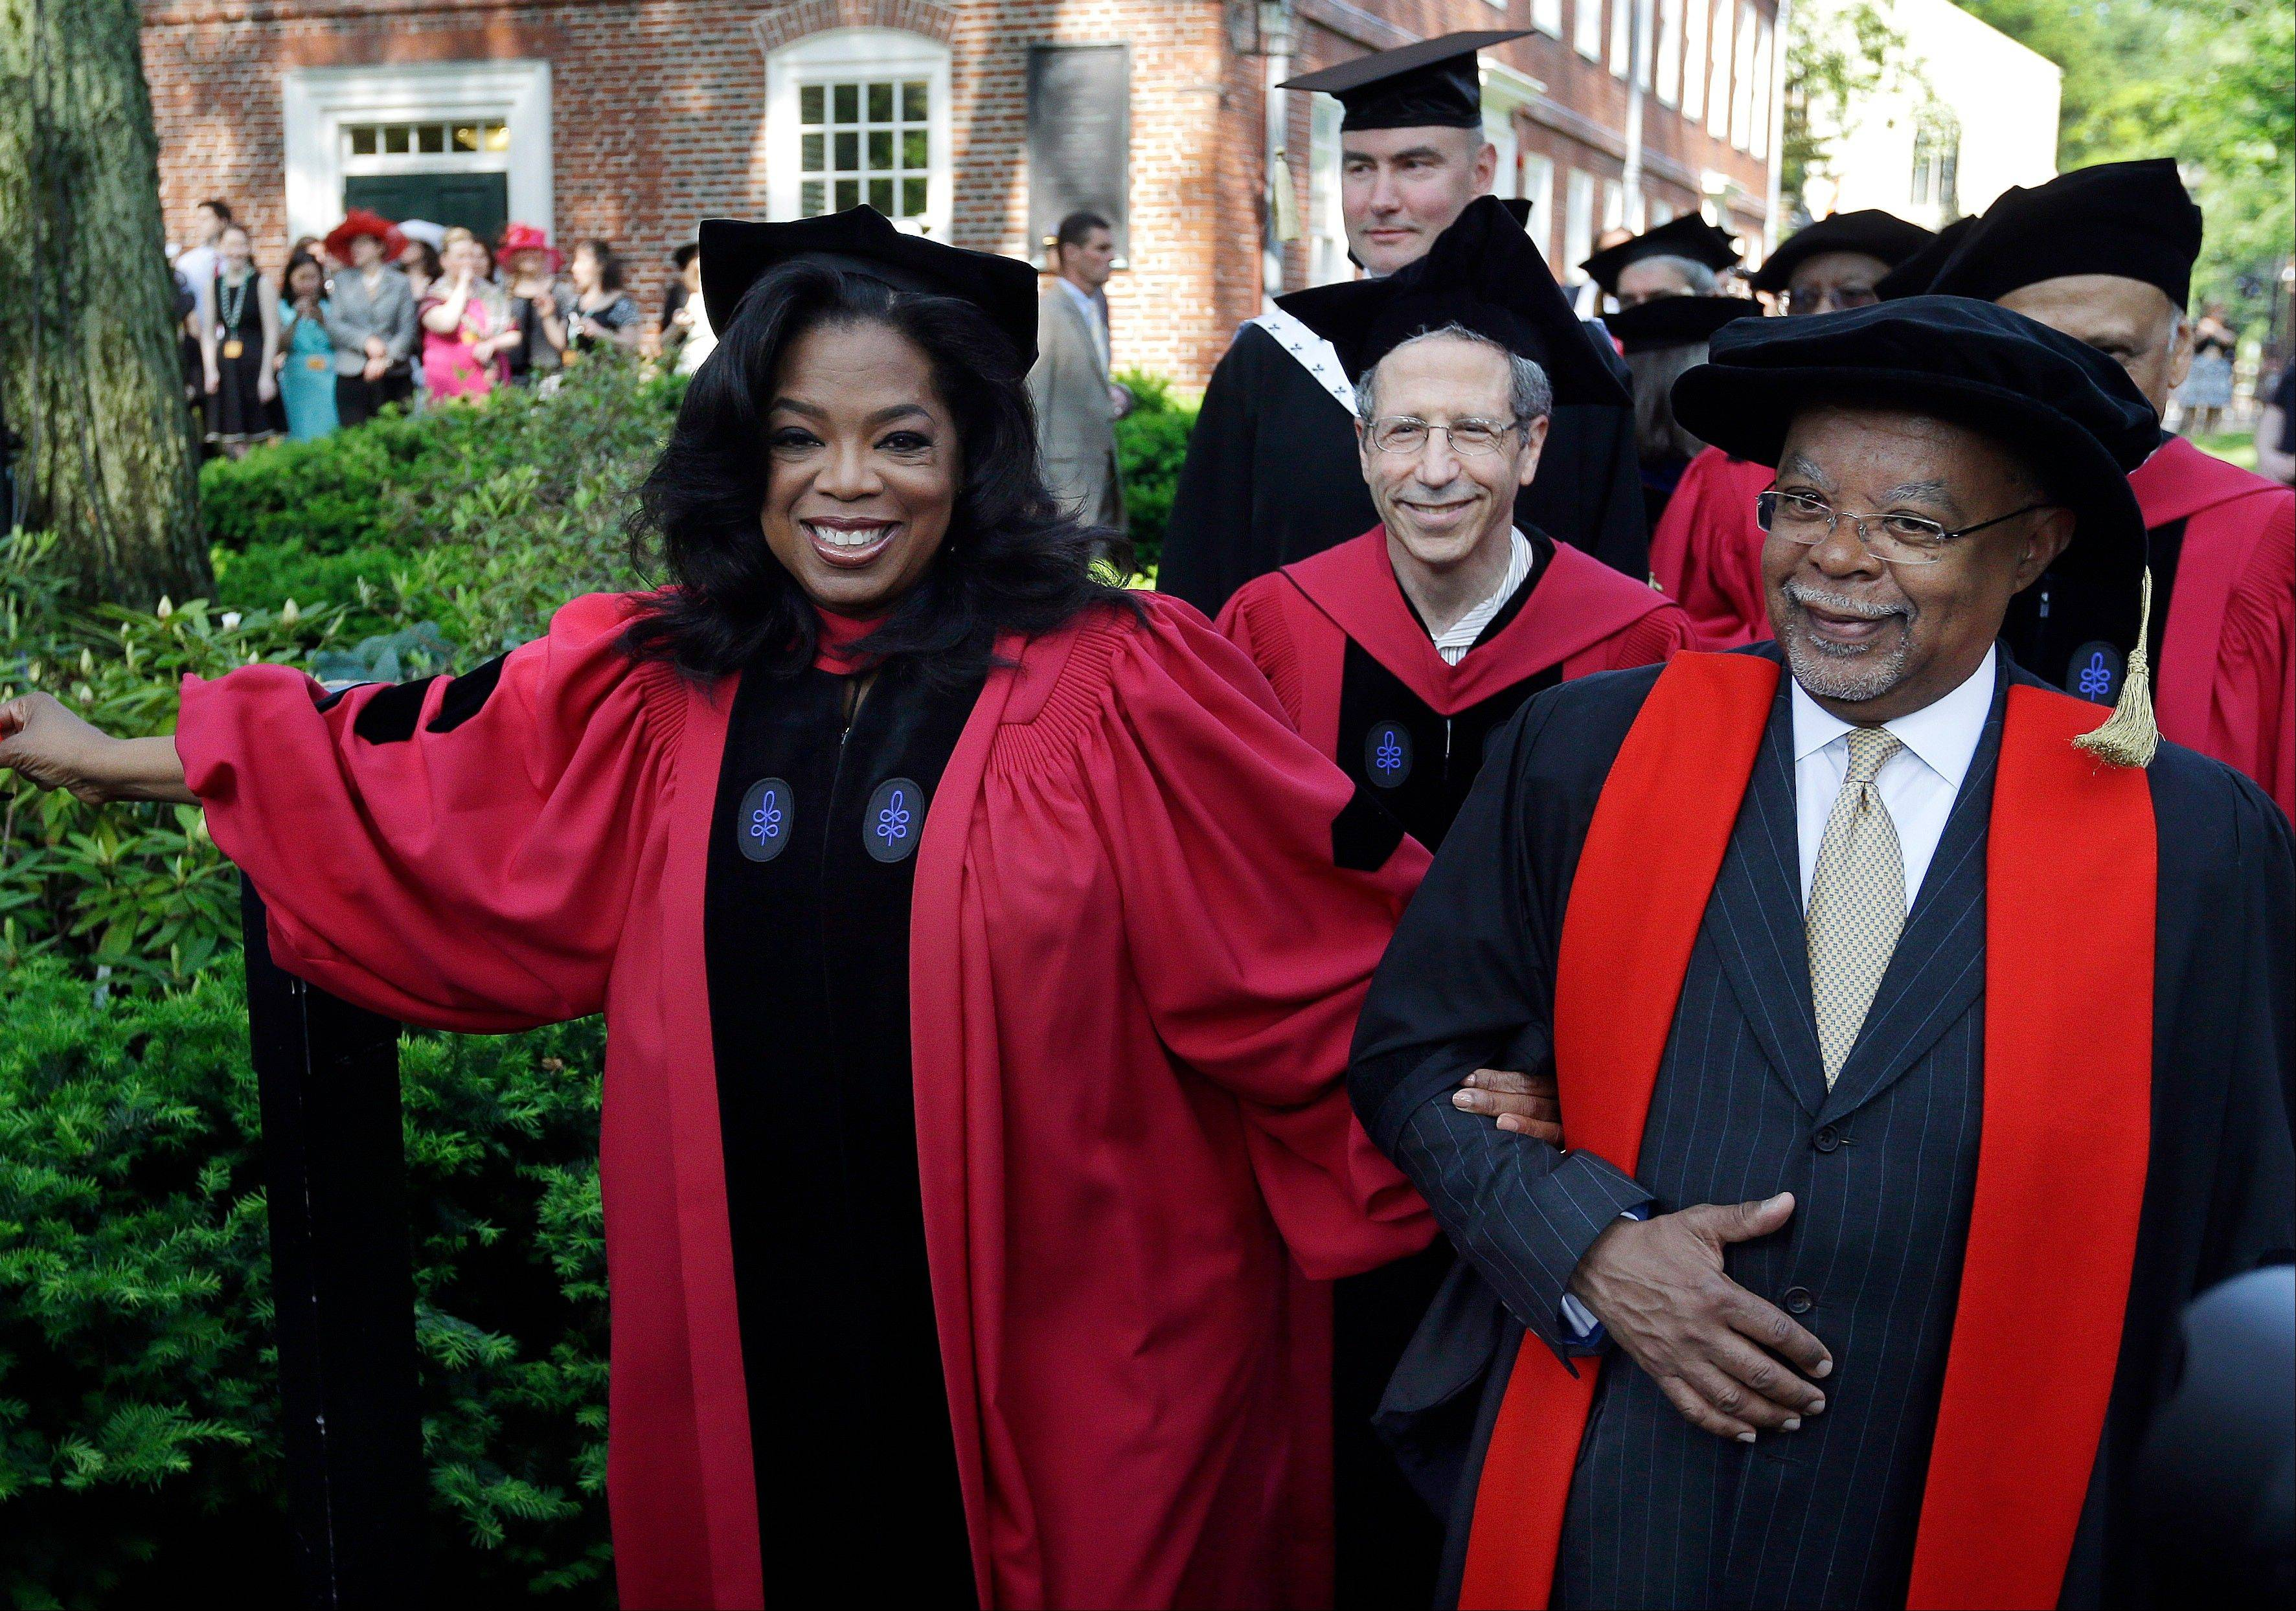 Oprah Winfrey walks with Professor Henry Louis Gates in the procession during commencement ceremonies Thursday at Harvard University in Cambridge, Mass..